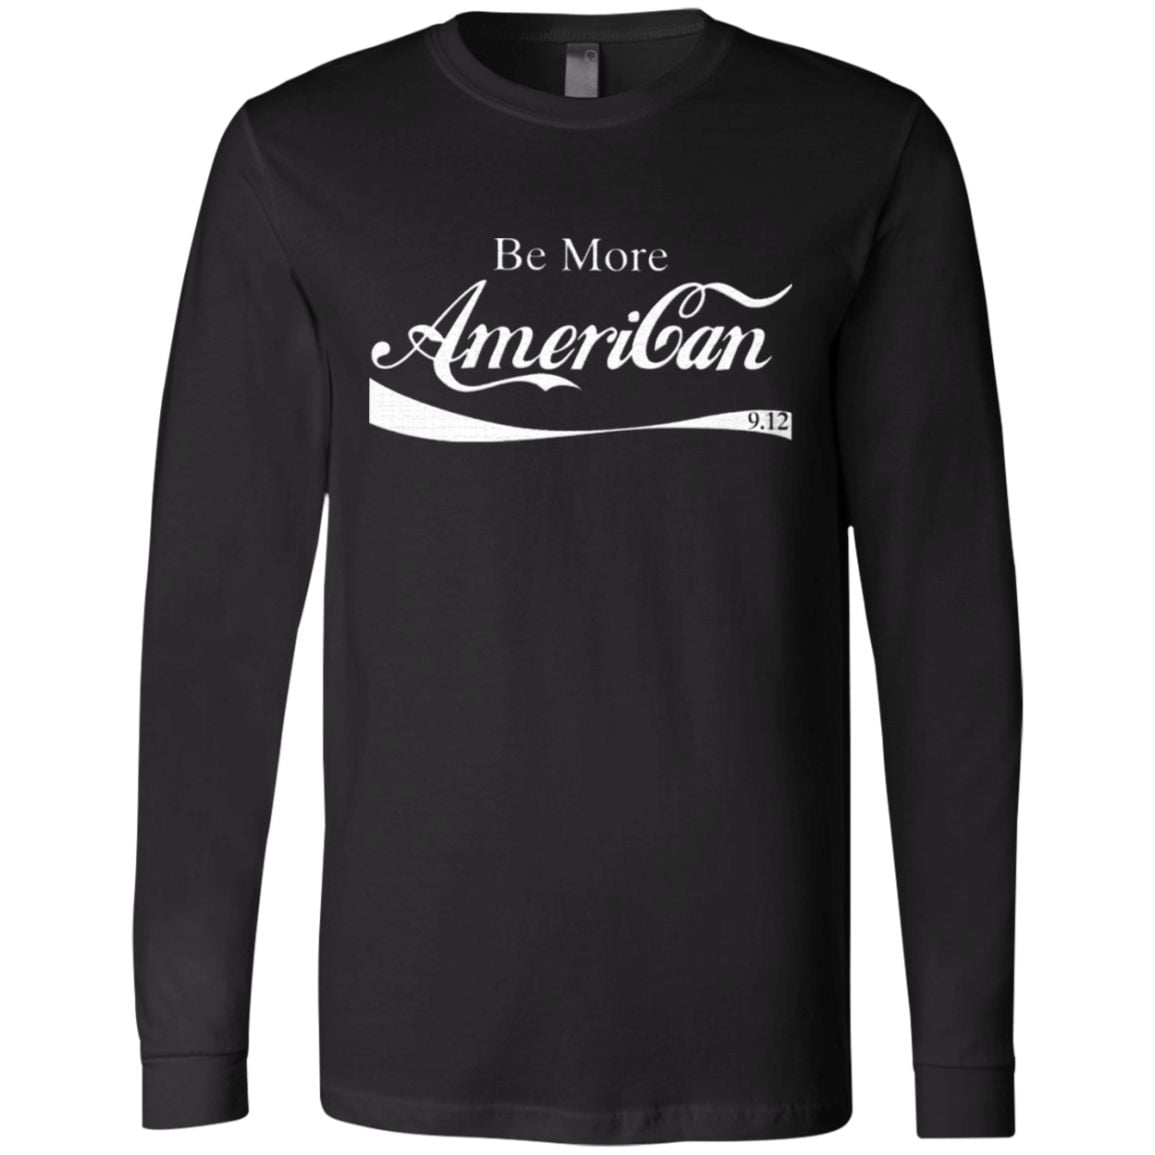 Be More American T Shirt